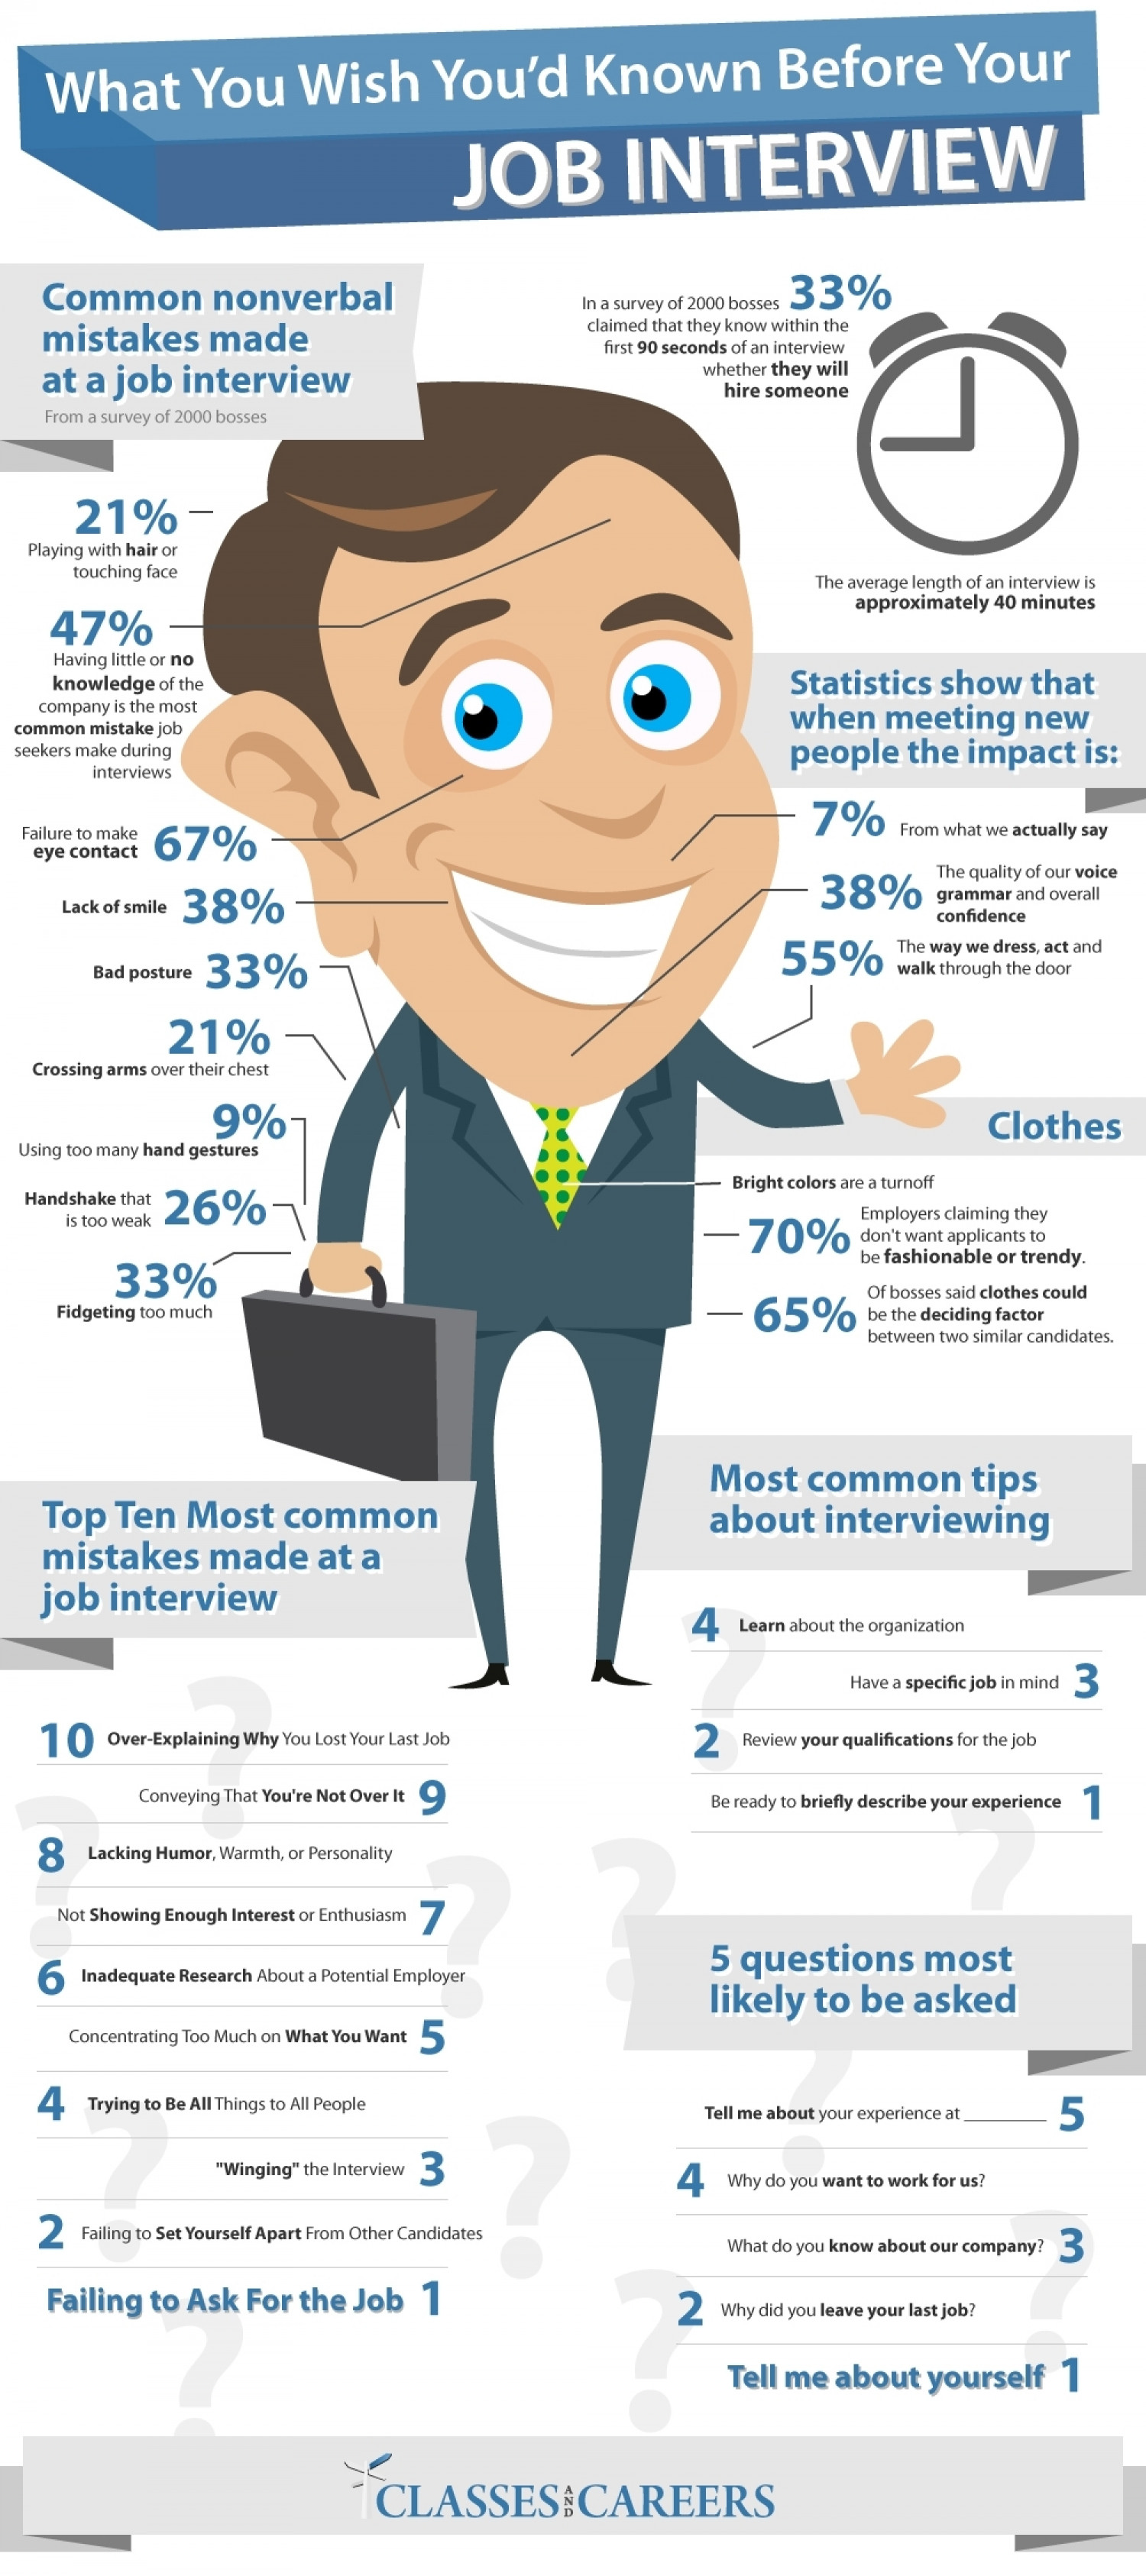 What You Wish You'd Known Before Your Job Interview Infographic